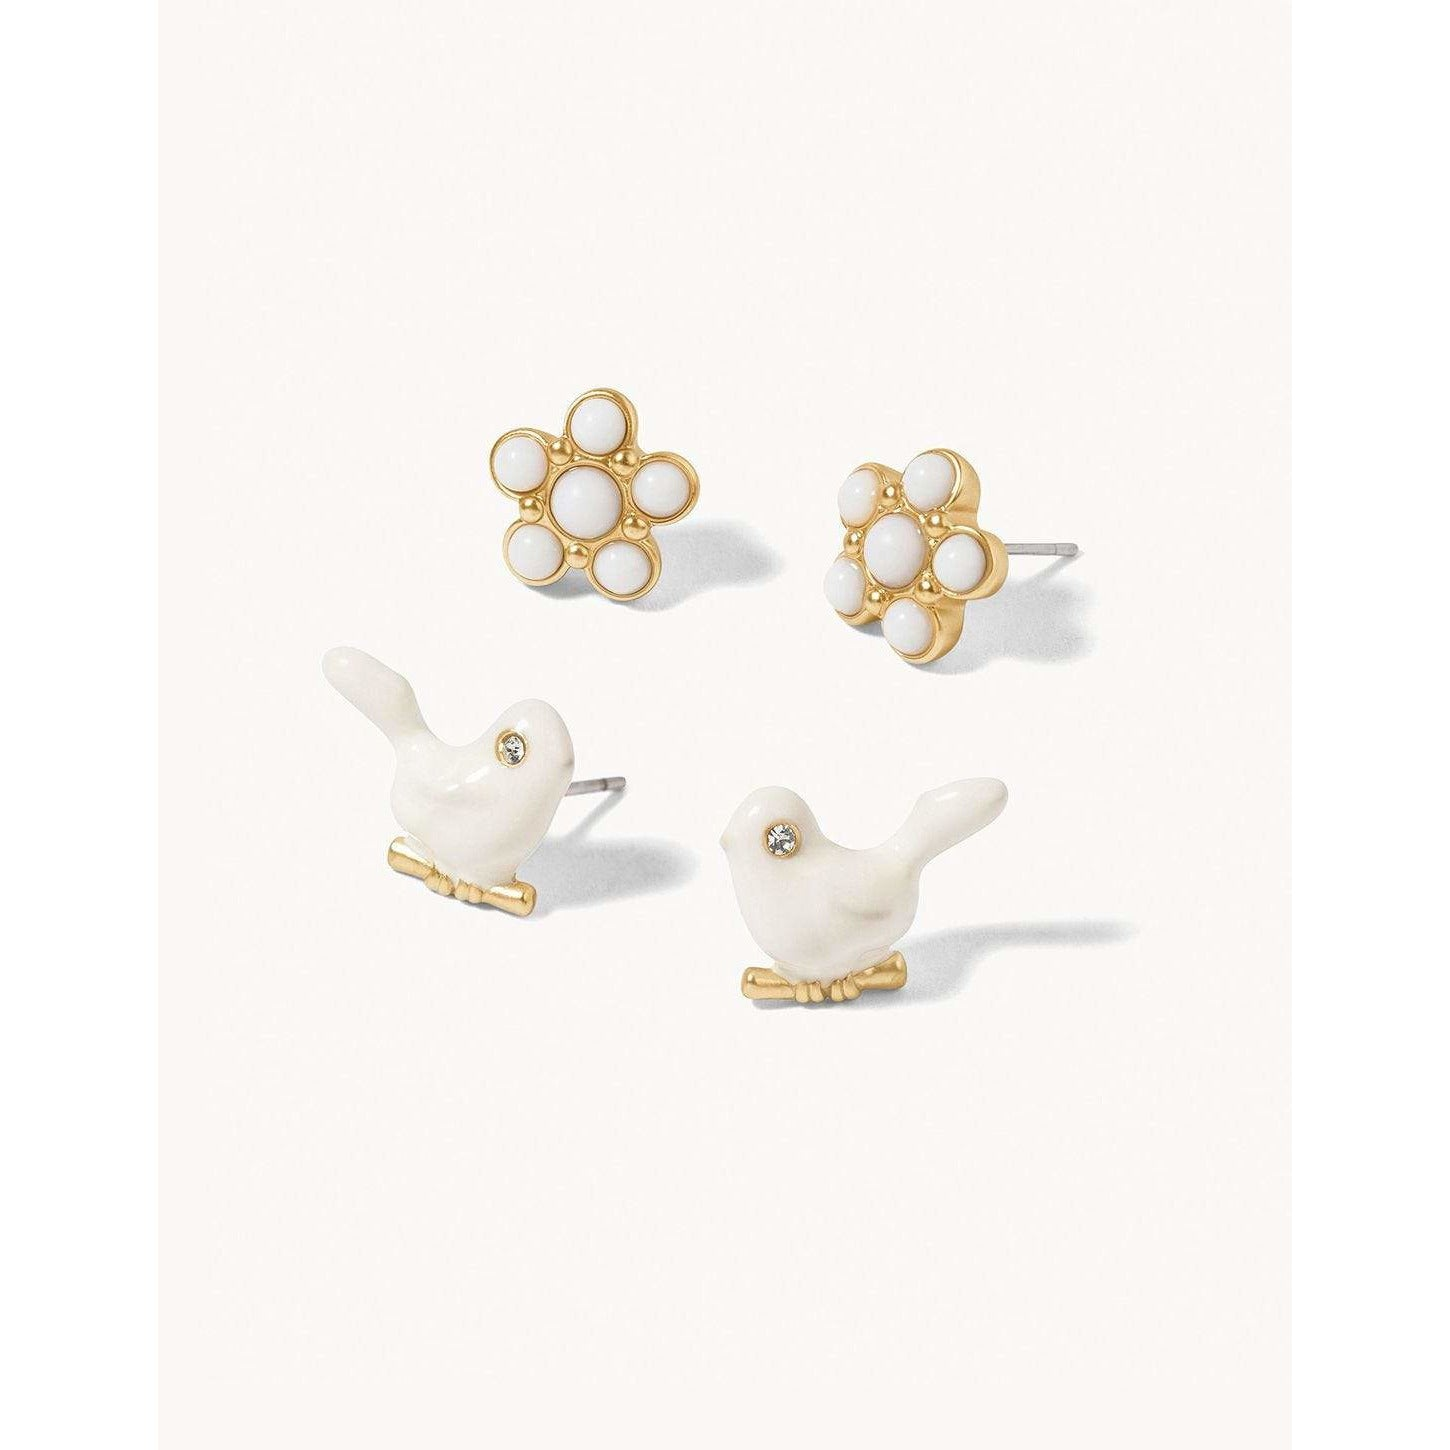 Spartina 449 - SONGBIRD STUD EARRINGS SET, Front View